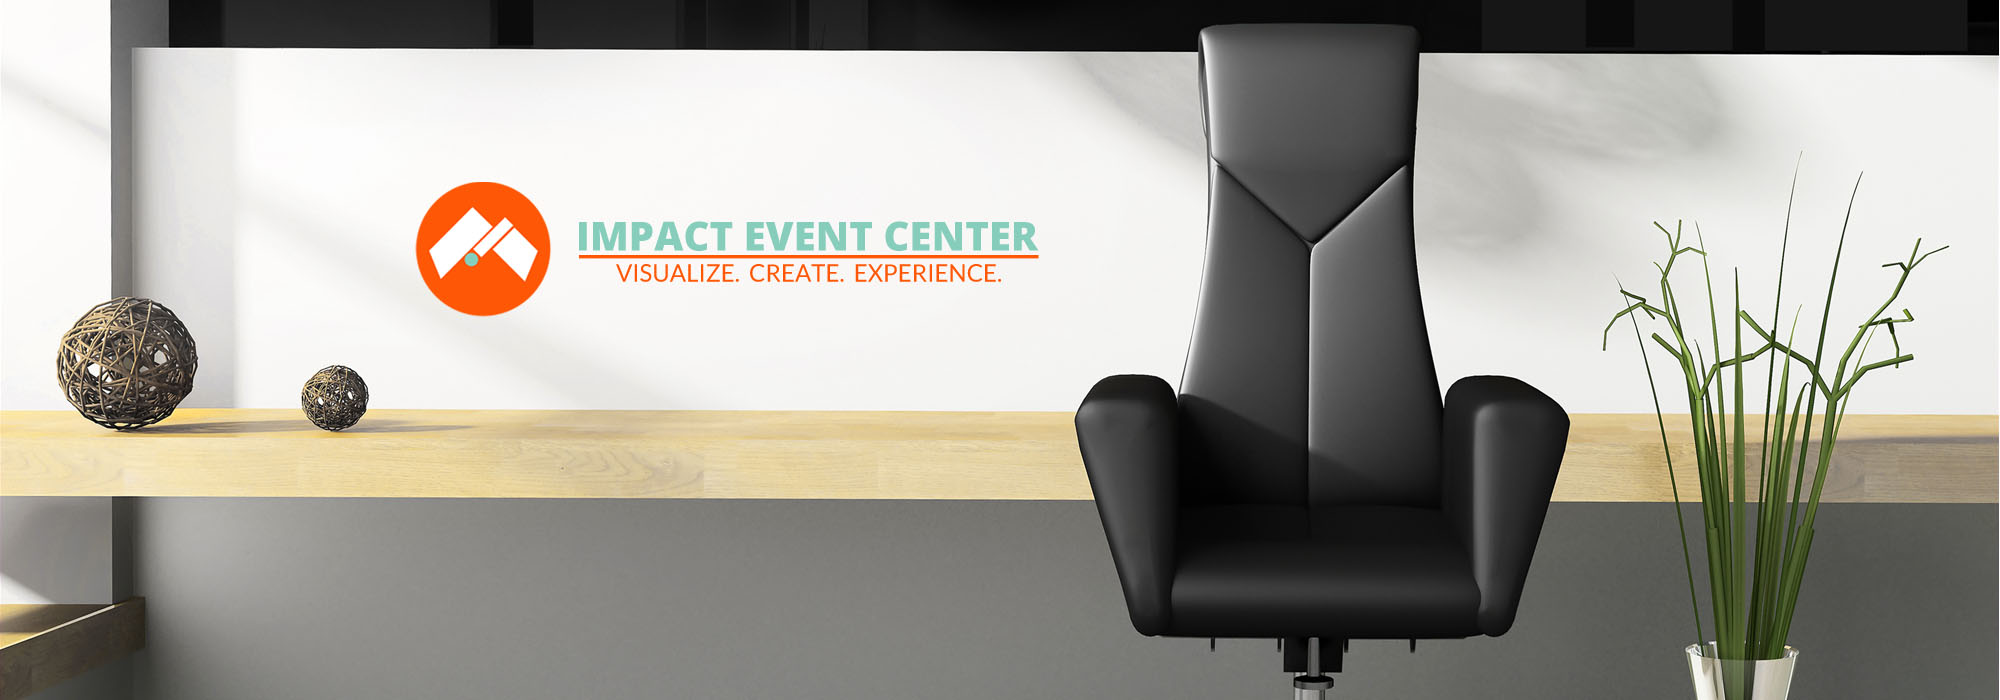 impact-event-center-design-HEADER